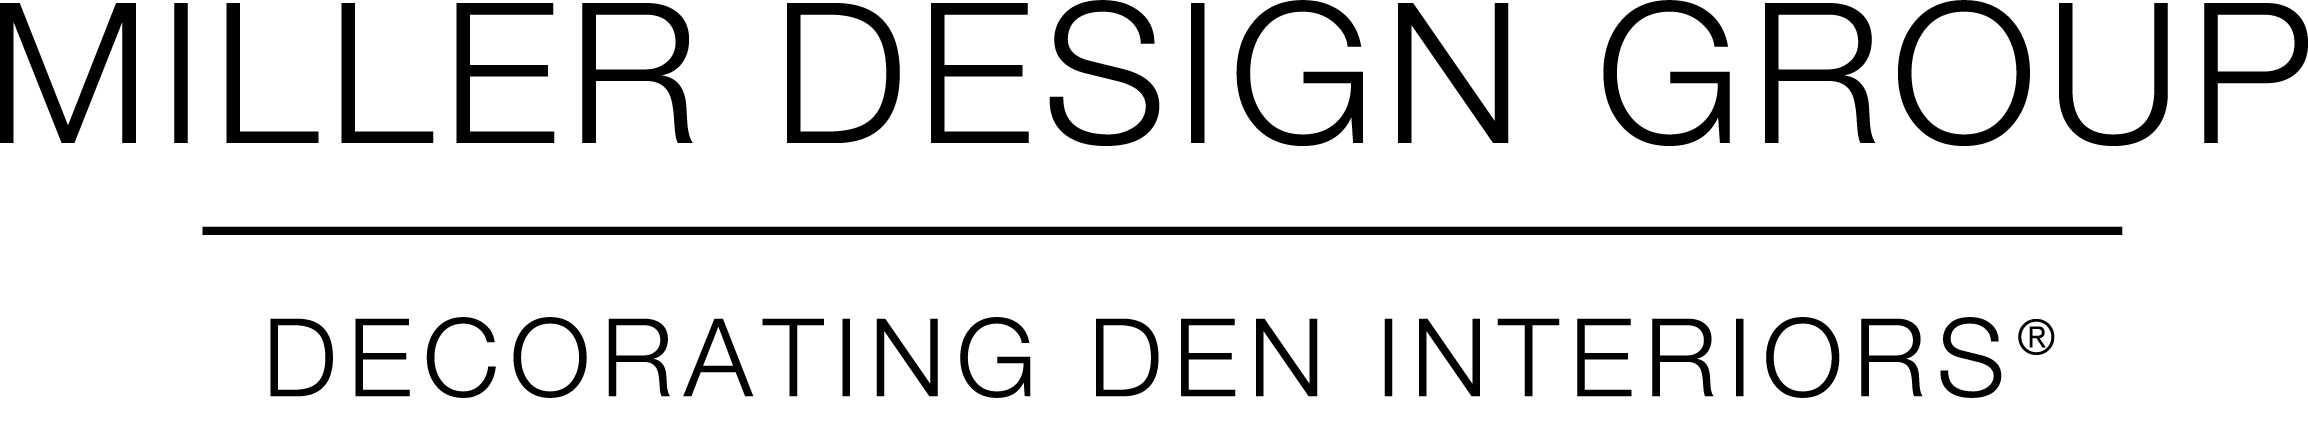 Miller Design Group - Decorating Den Interiors